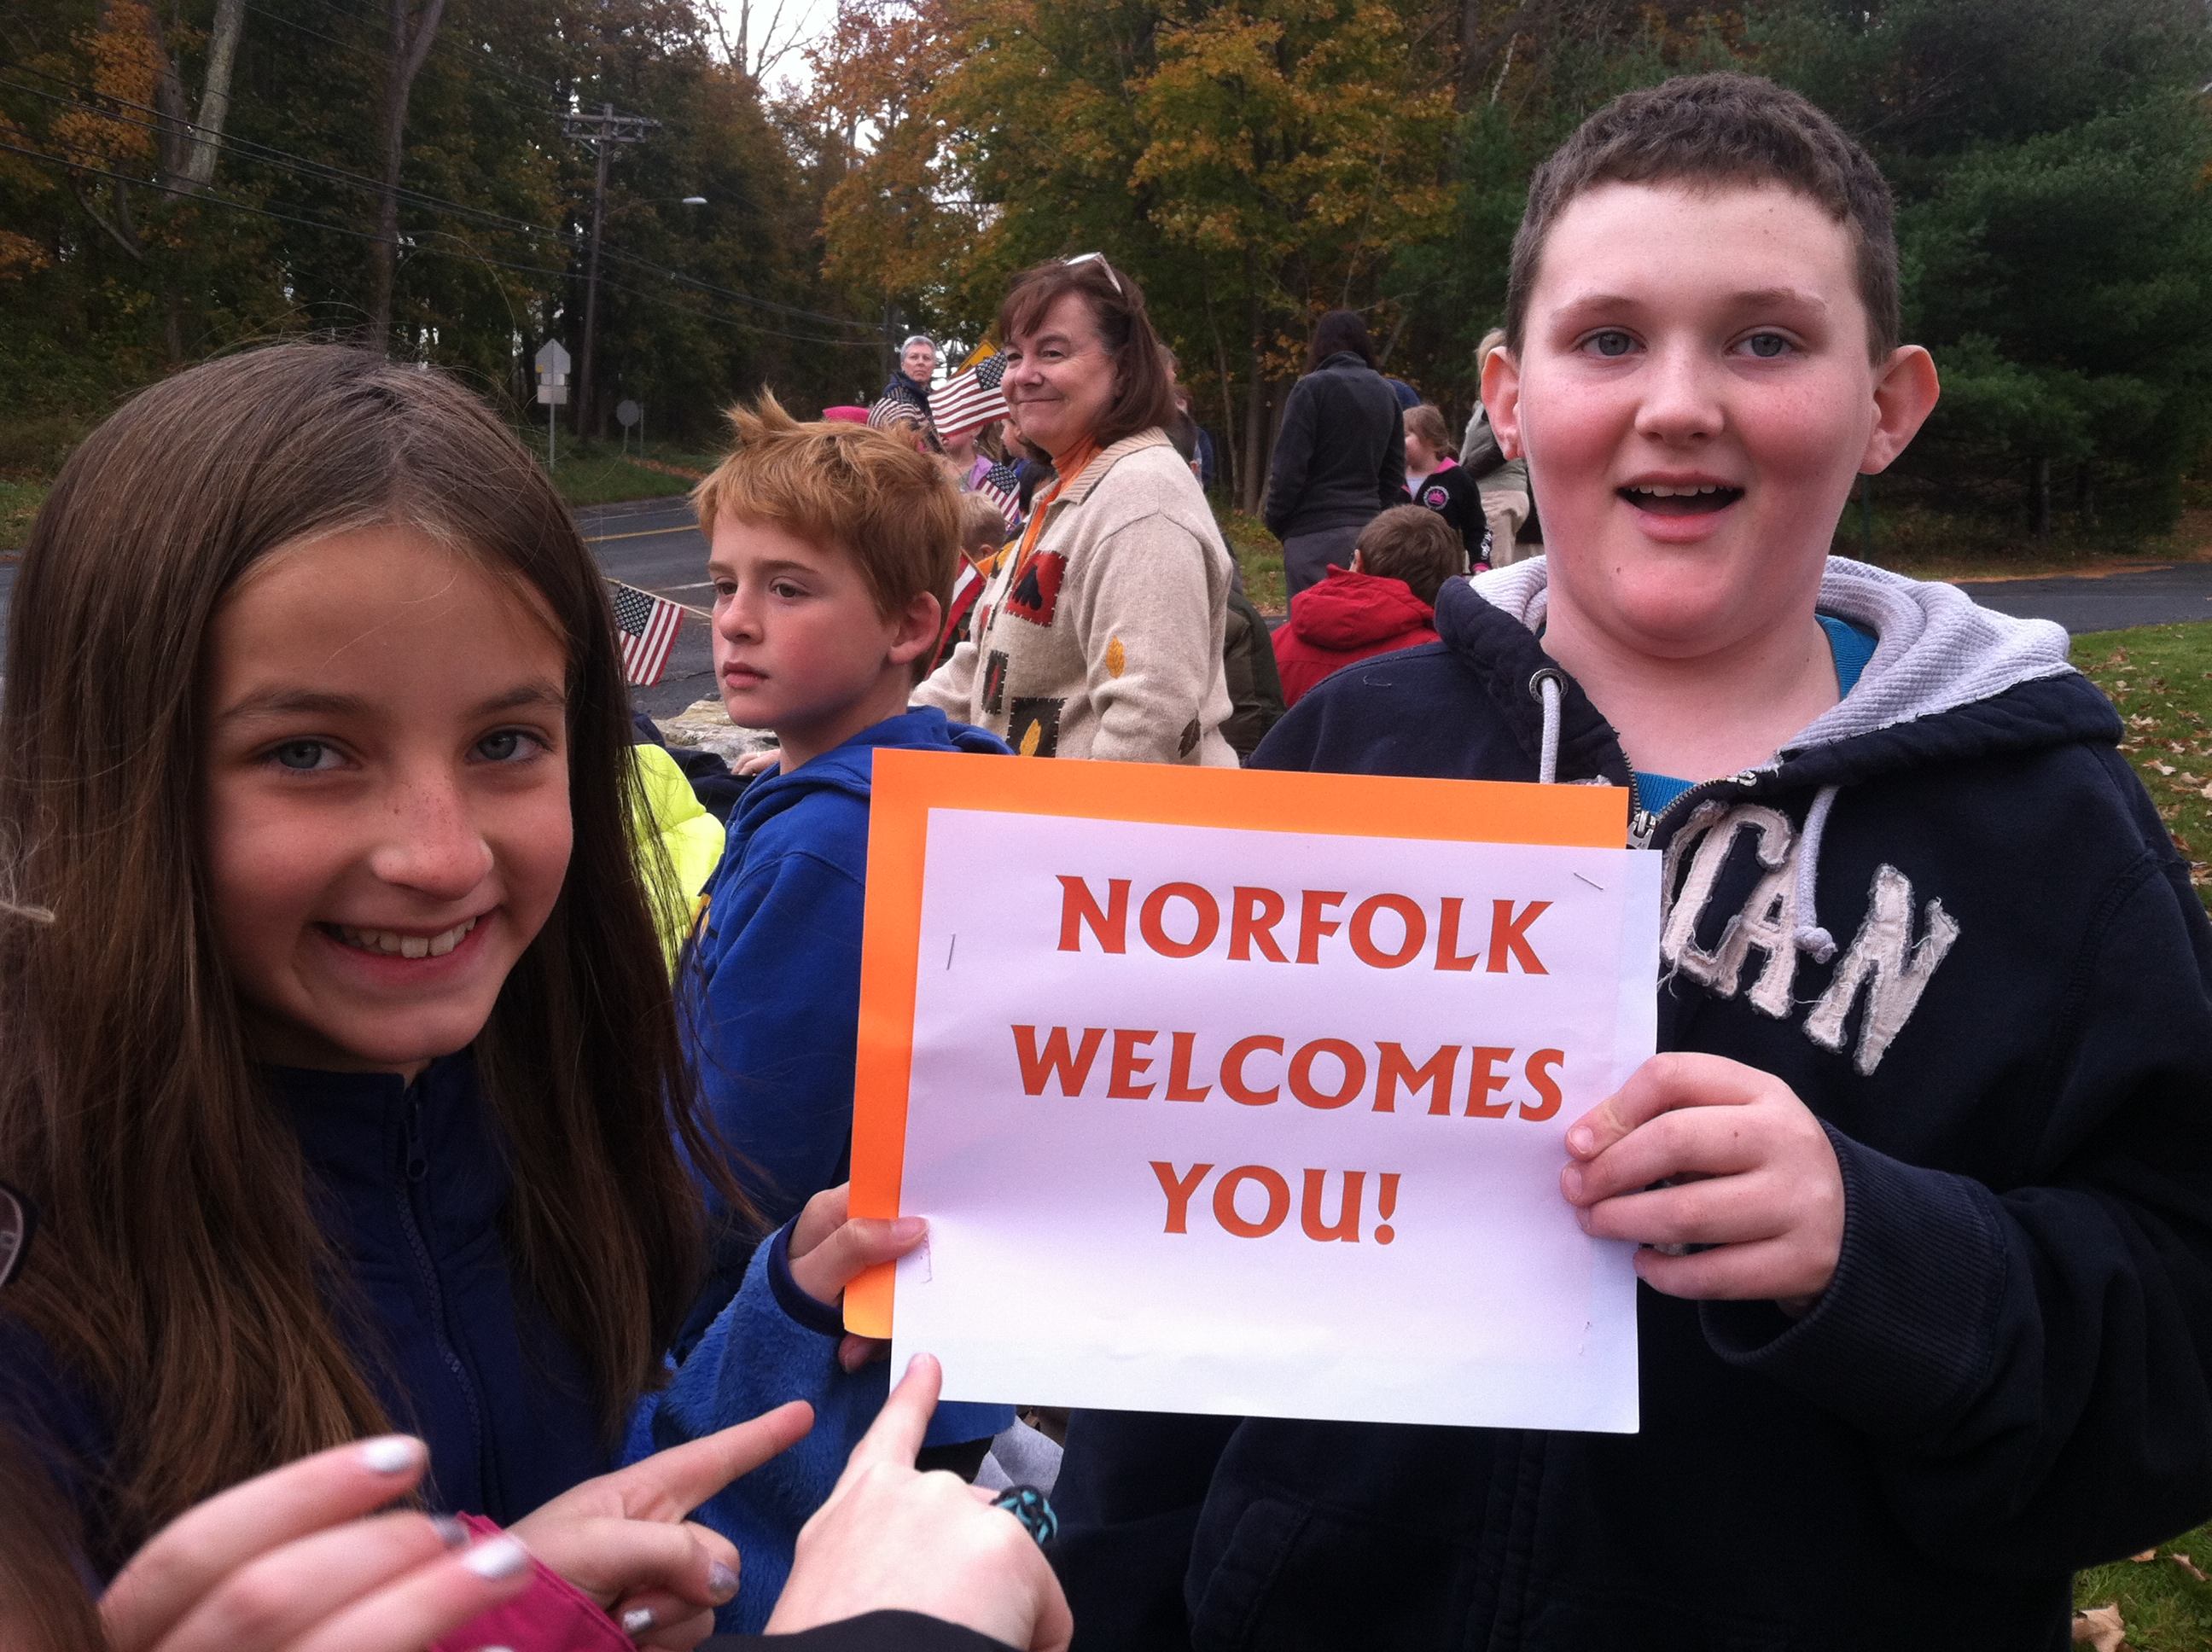 Welcome to Norfolk!